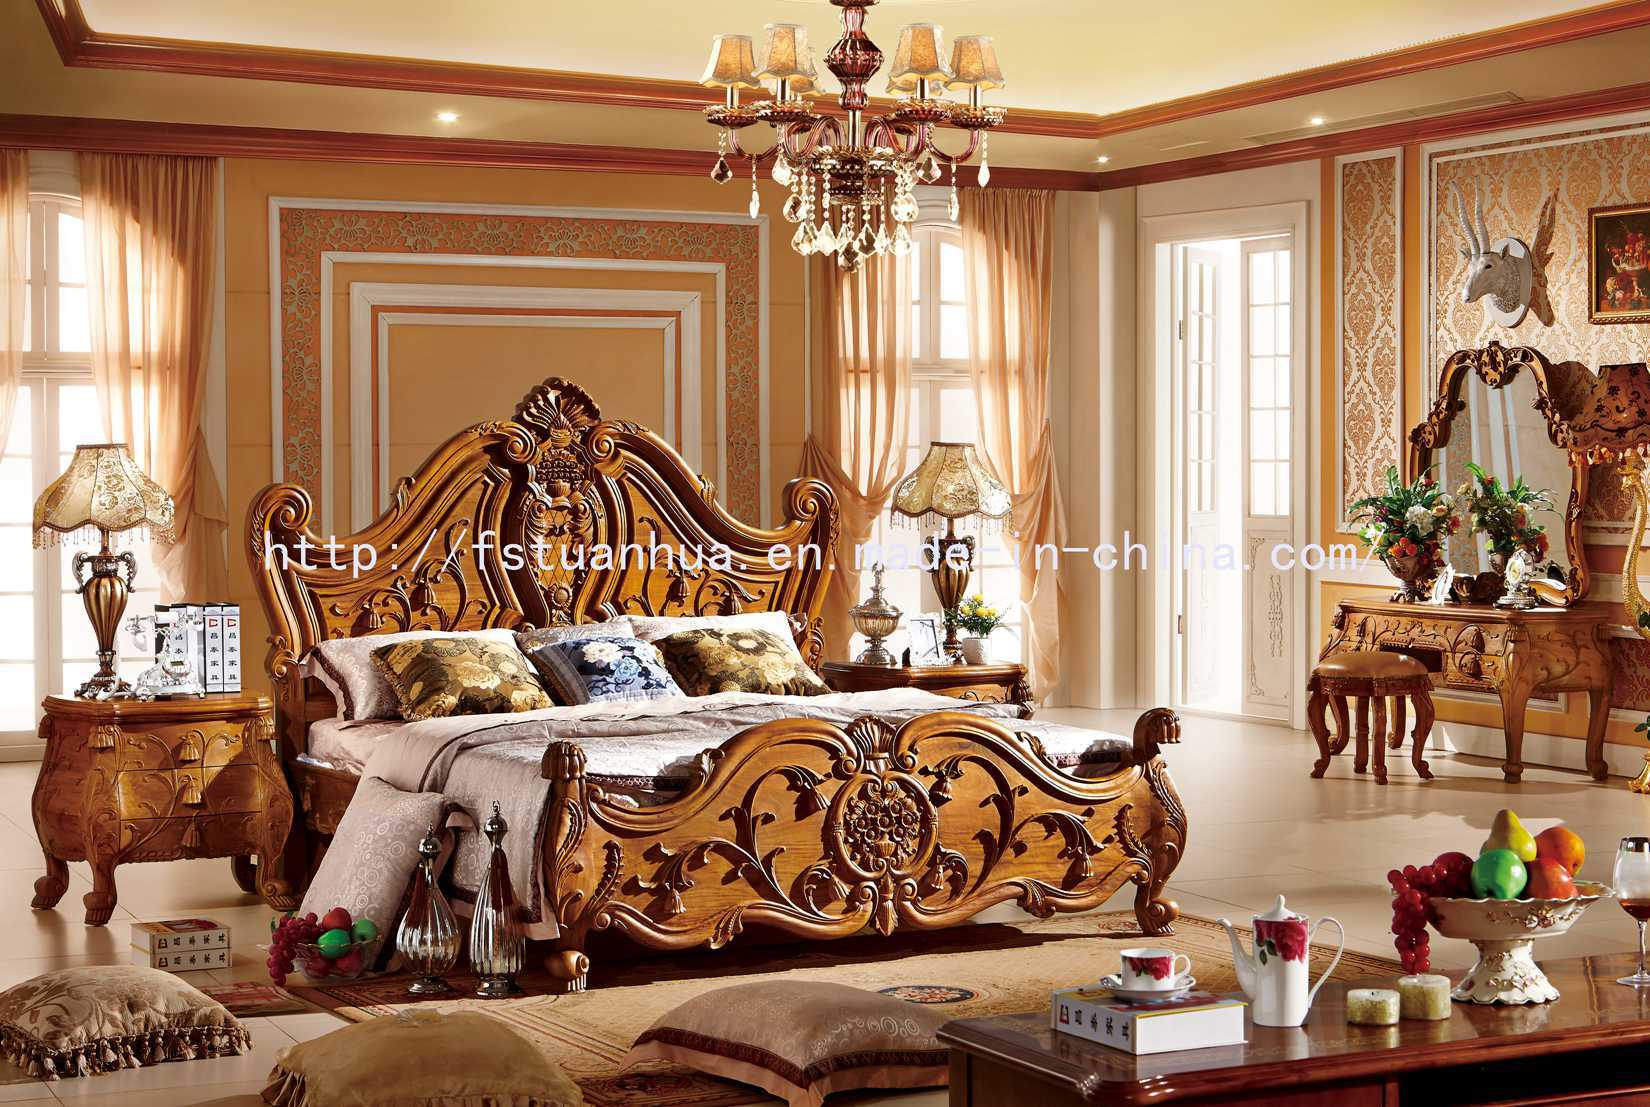 Wooden king size bed designs pictures - China Top Quality European Teak Wood Double Bed Model Designs Th 516